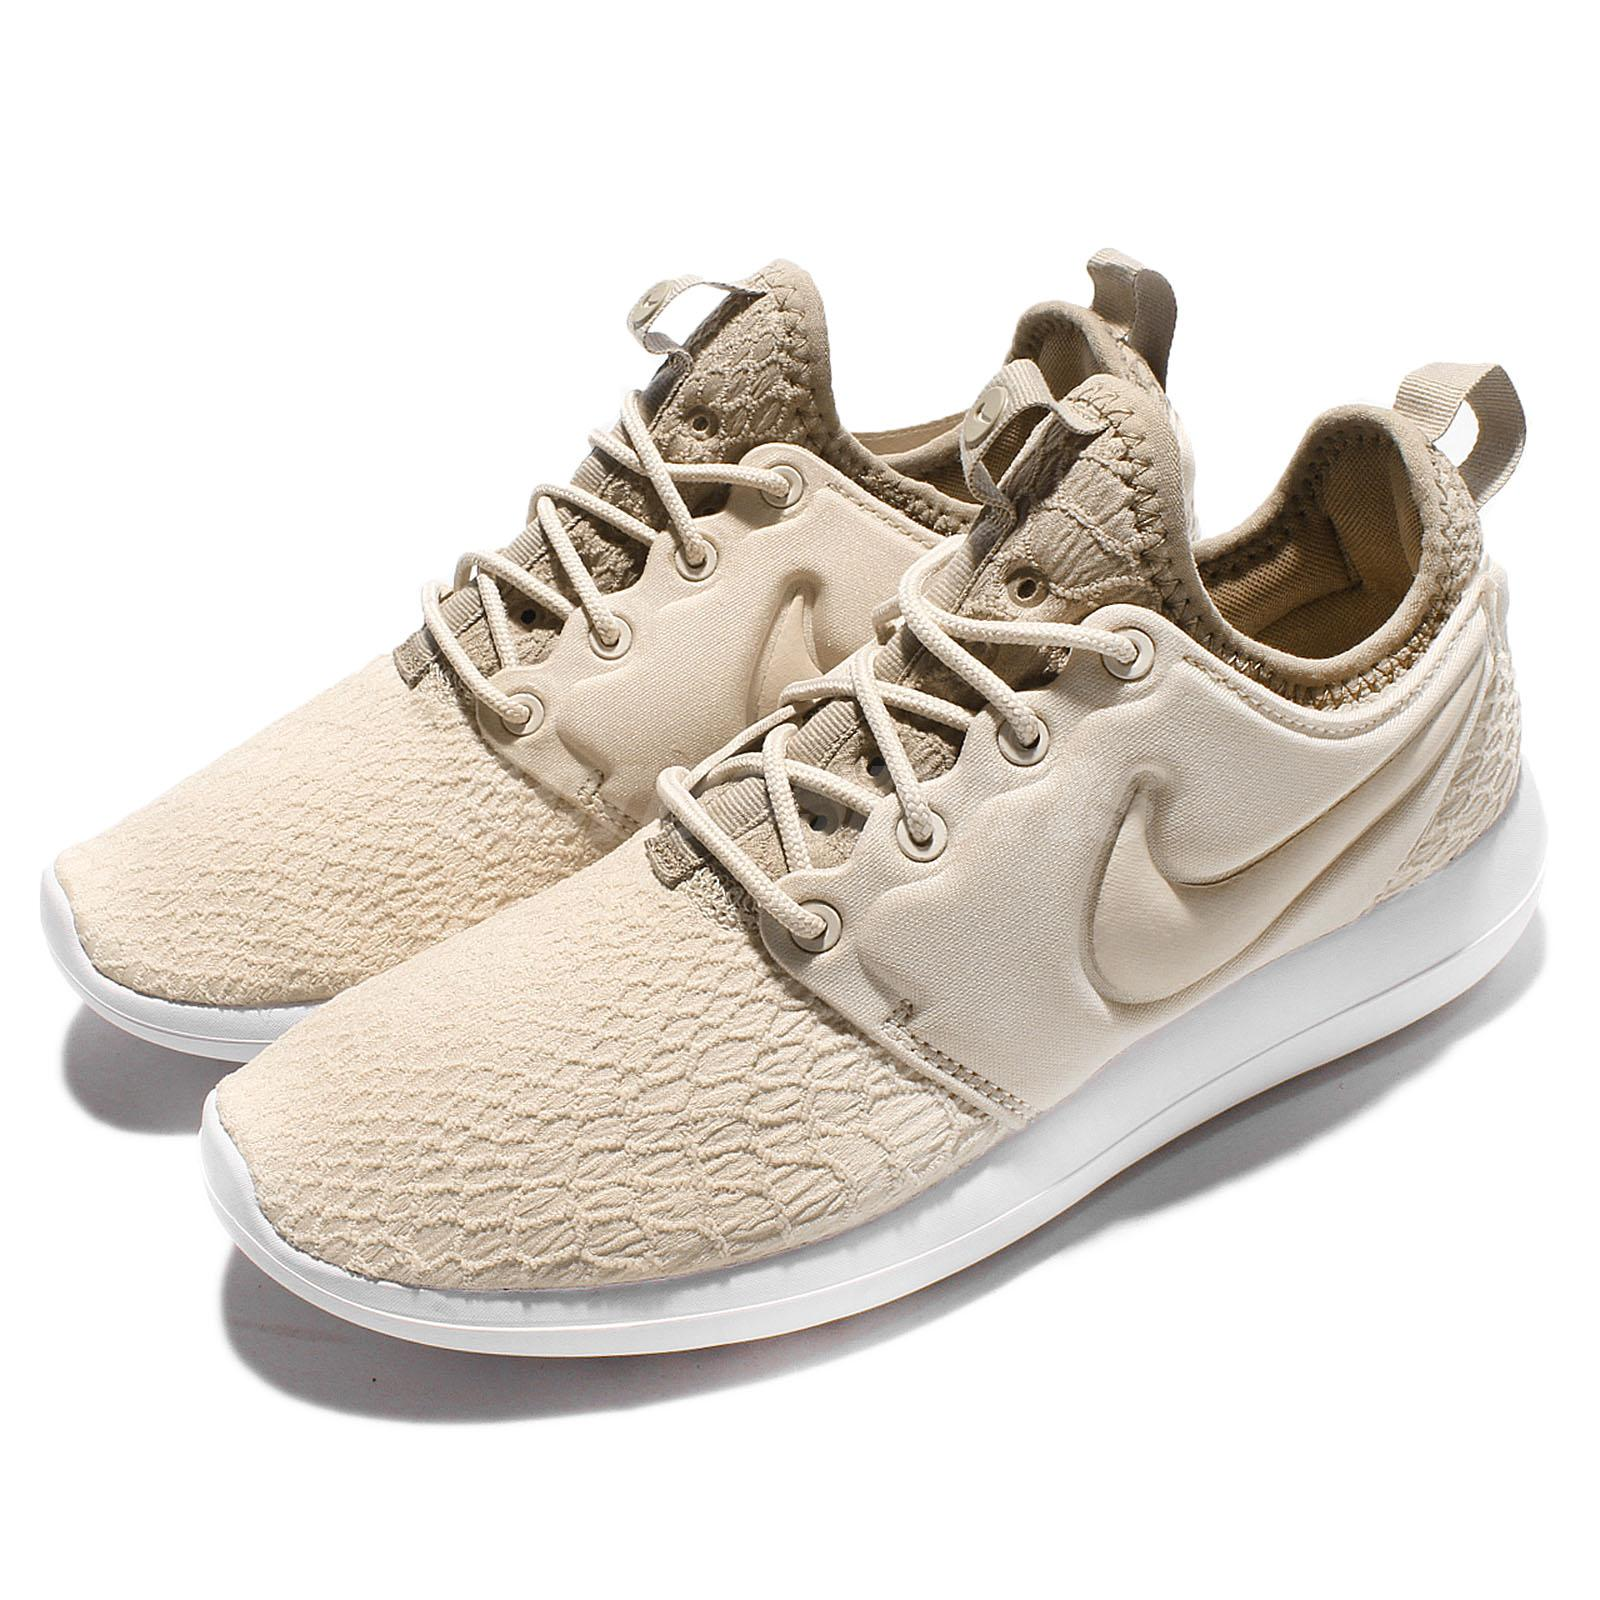 cheaper 38aff 8d0b0 Details about Nike Wmns Roshe Two SE 2 Oatmeal Women Running Shoes Rosherun  Sneaker 881188-100